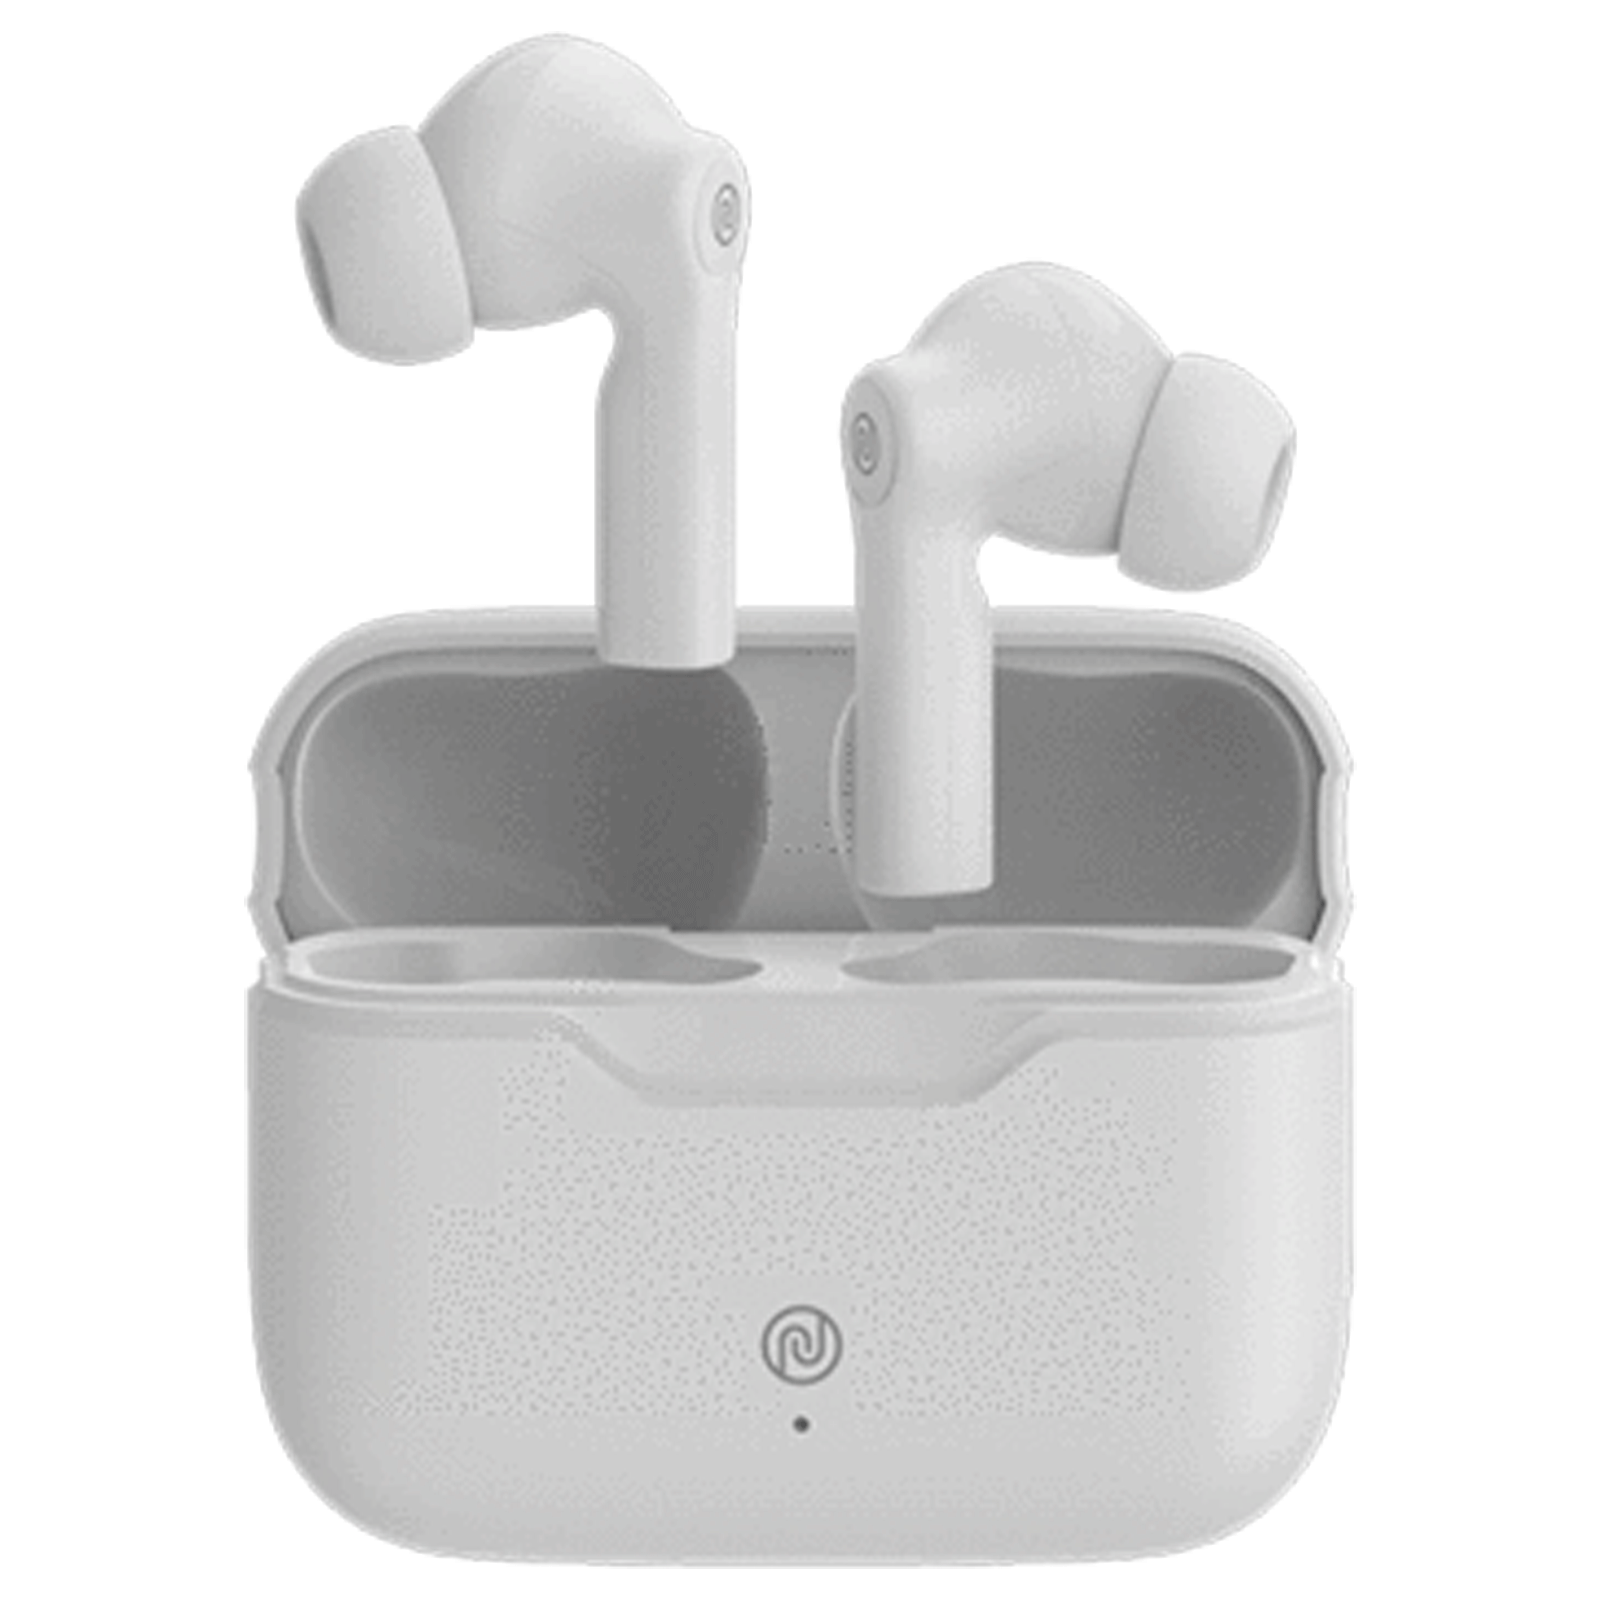 Noise Buds VS103 In-Ear Truly Wireless Earbuds with Mic (Bluetooth 5.0, HyperSync Technology, AUD-HDPHN-BUDSVS10, Pearl White)_1